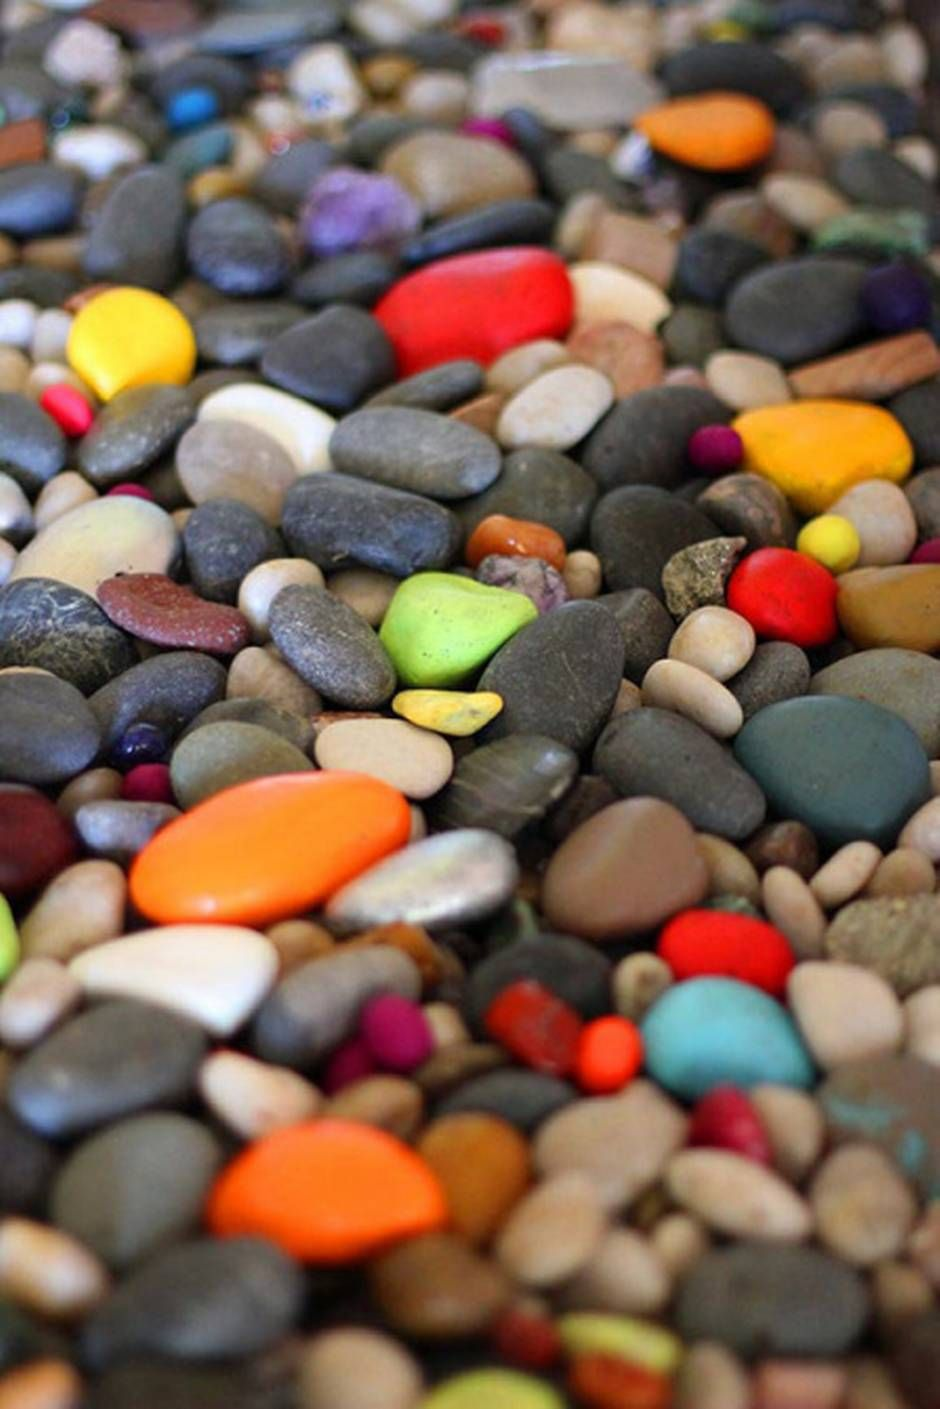 Build A Garden That Rocks: Turn Plain Stones Into A Whimsical Surprise |  Dallas Morning